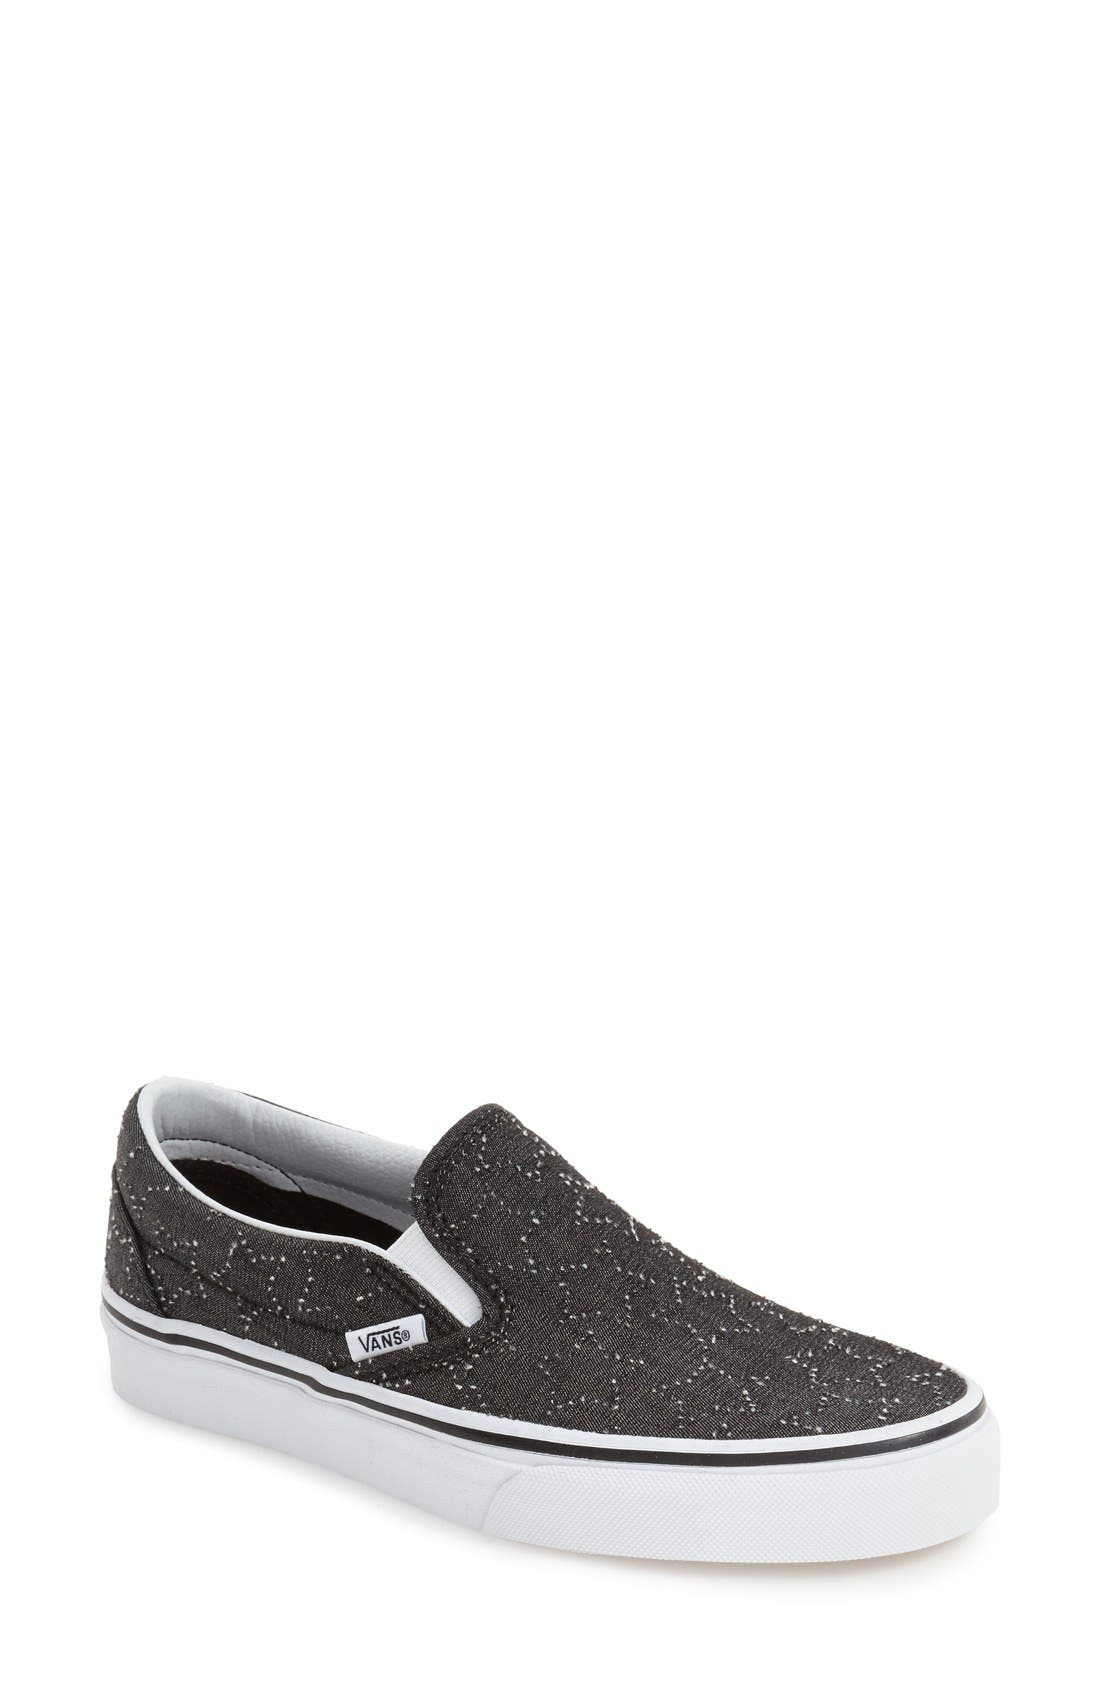 Classic Slip-On Sneaker,                             Main thumbnail 1, color,                             CHECKER FLORAL BLACK